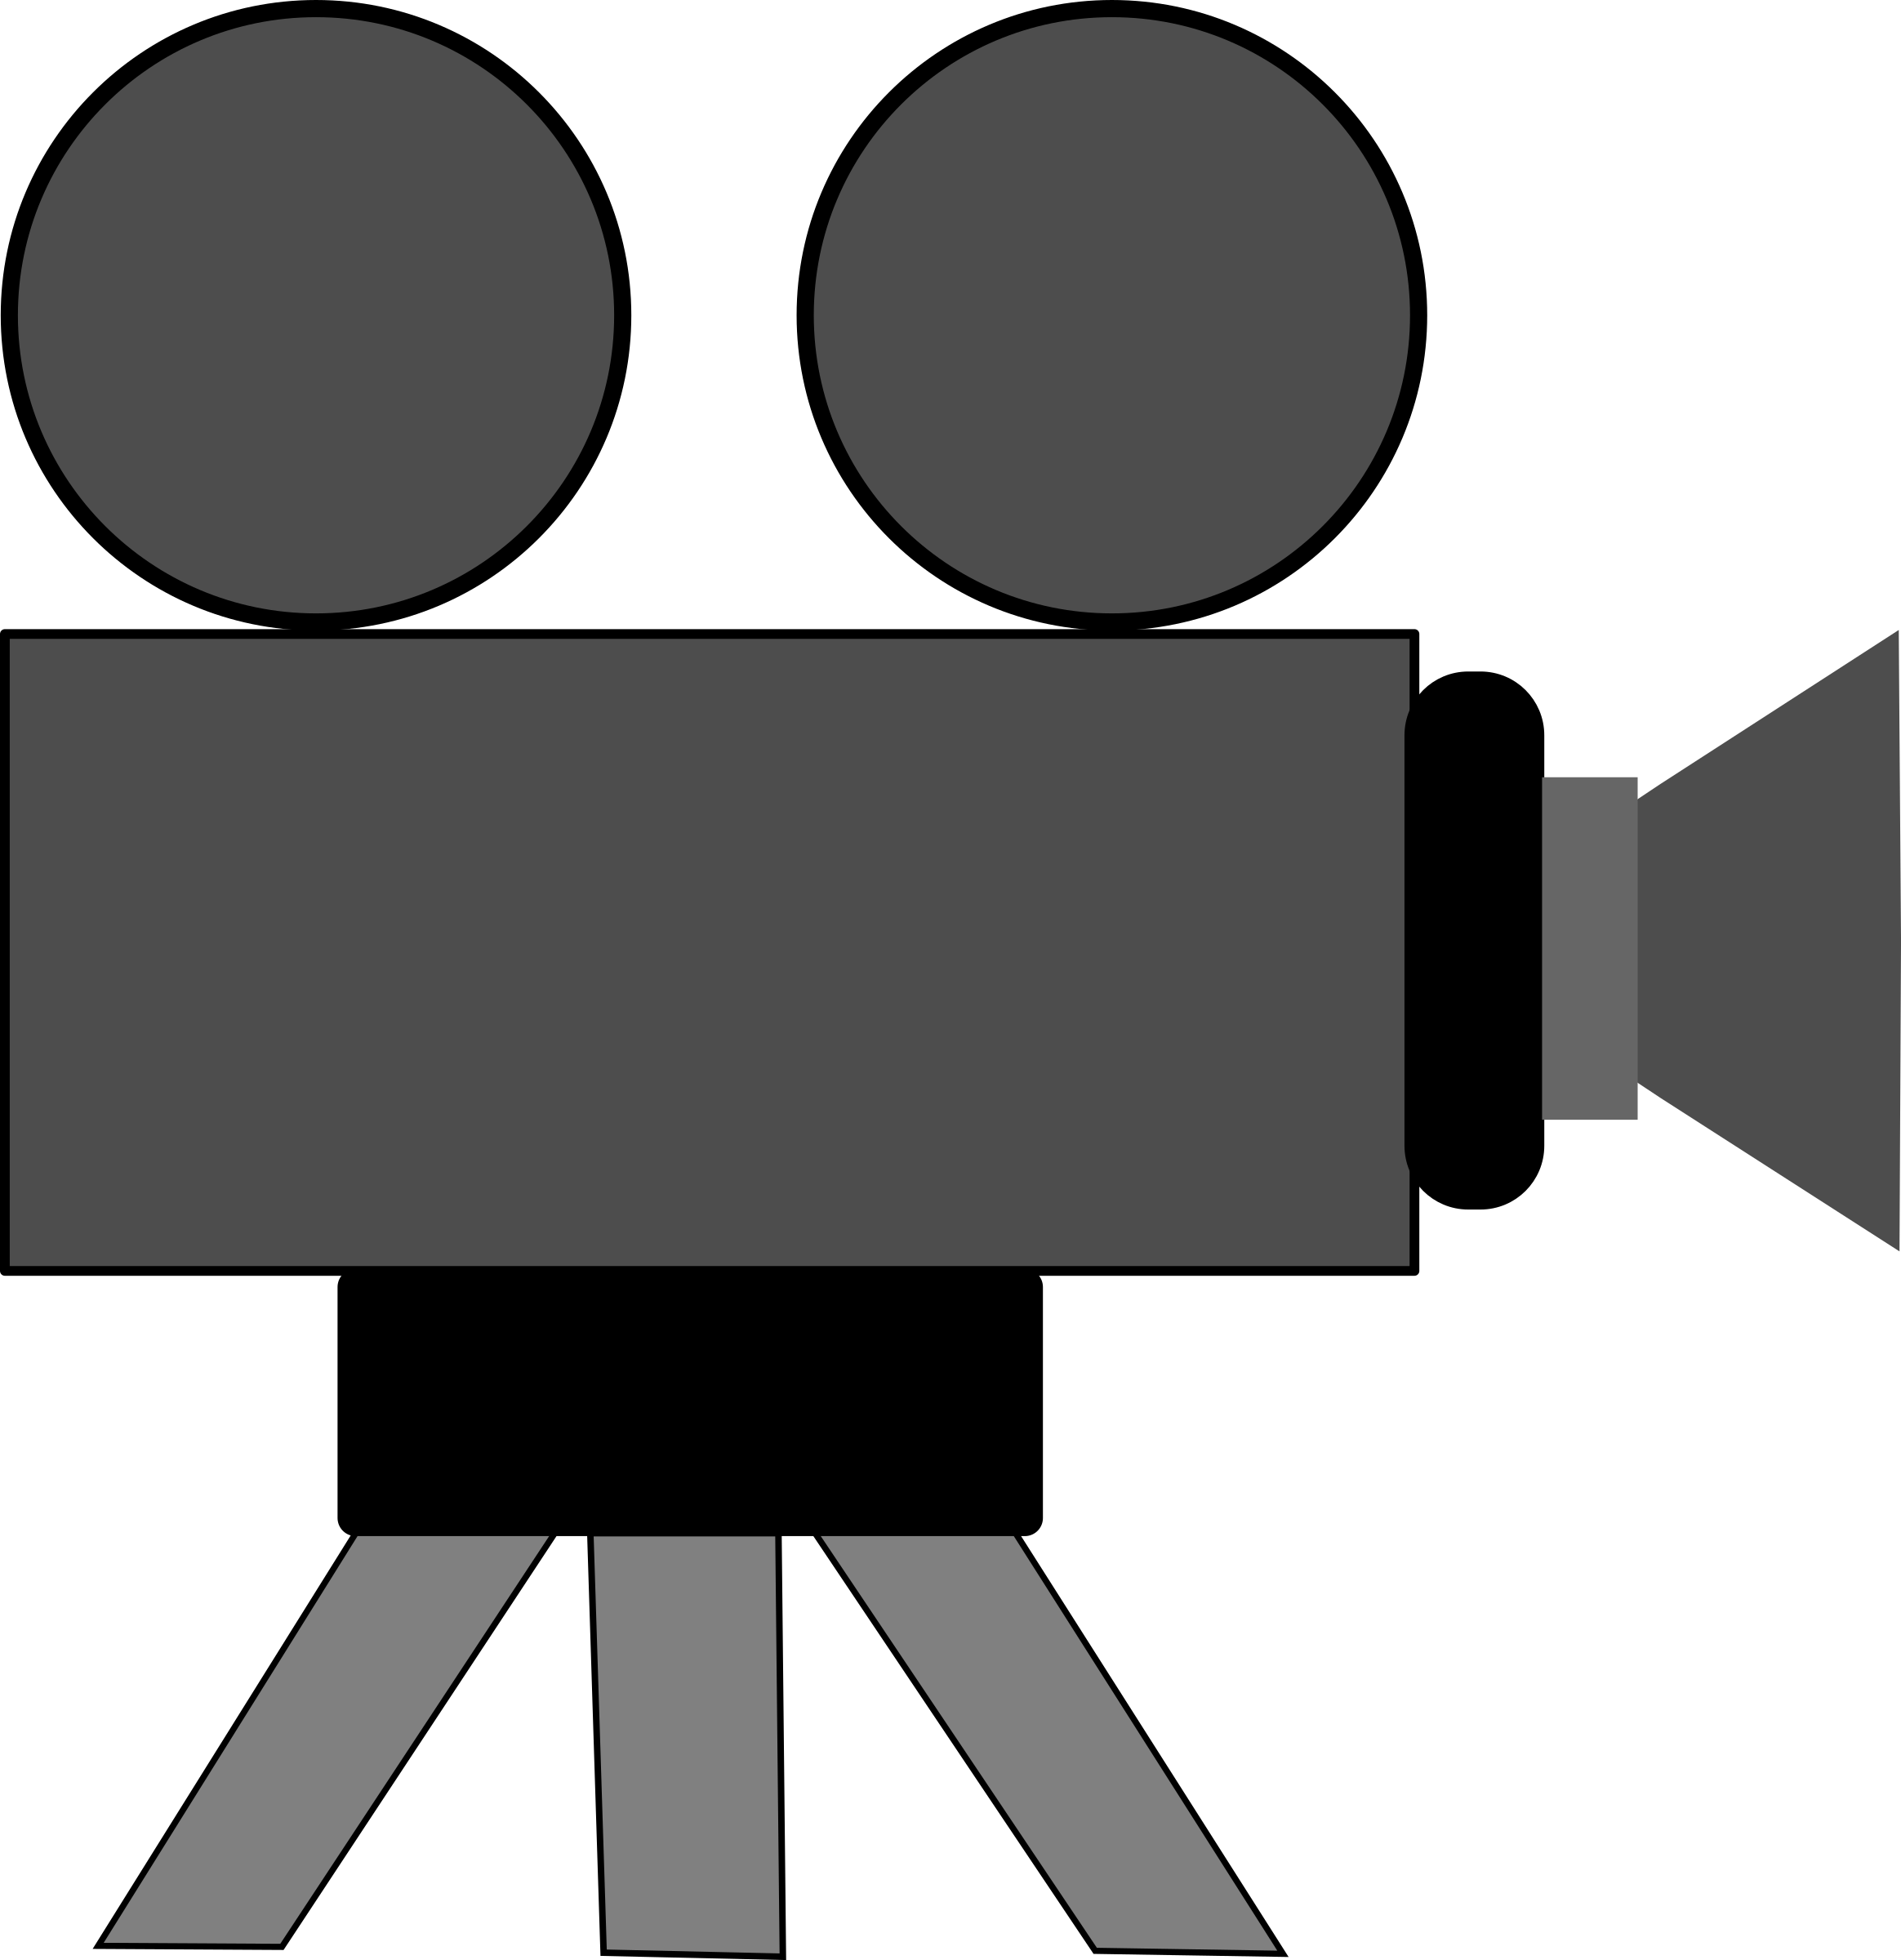 Film clipart pdf. Movie camera icons png